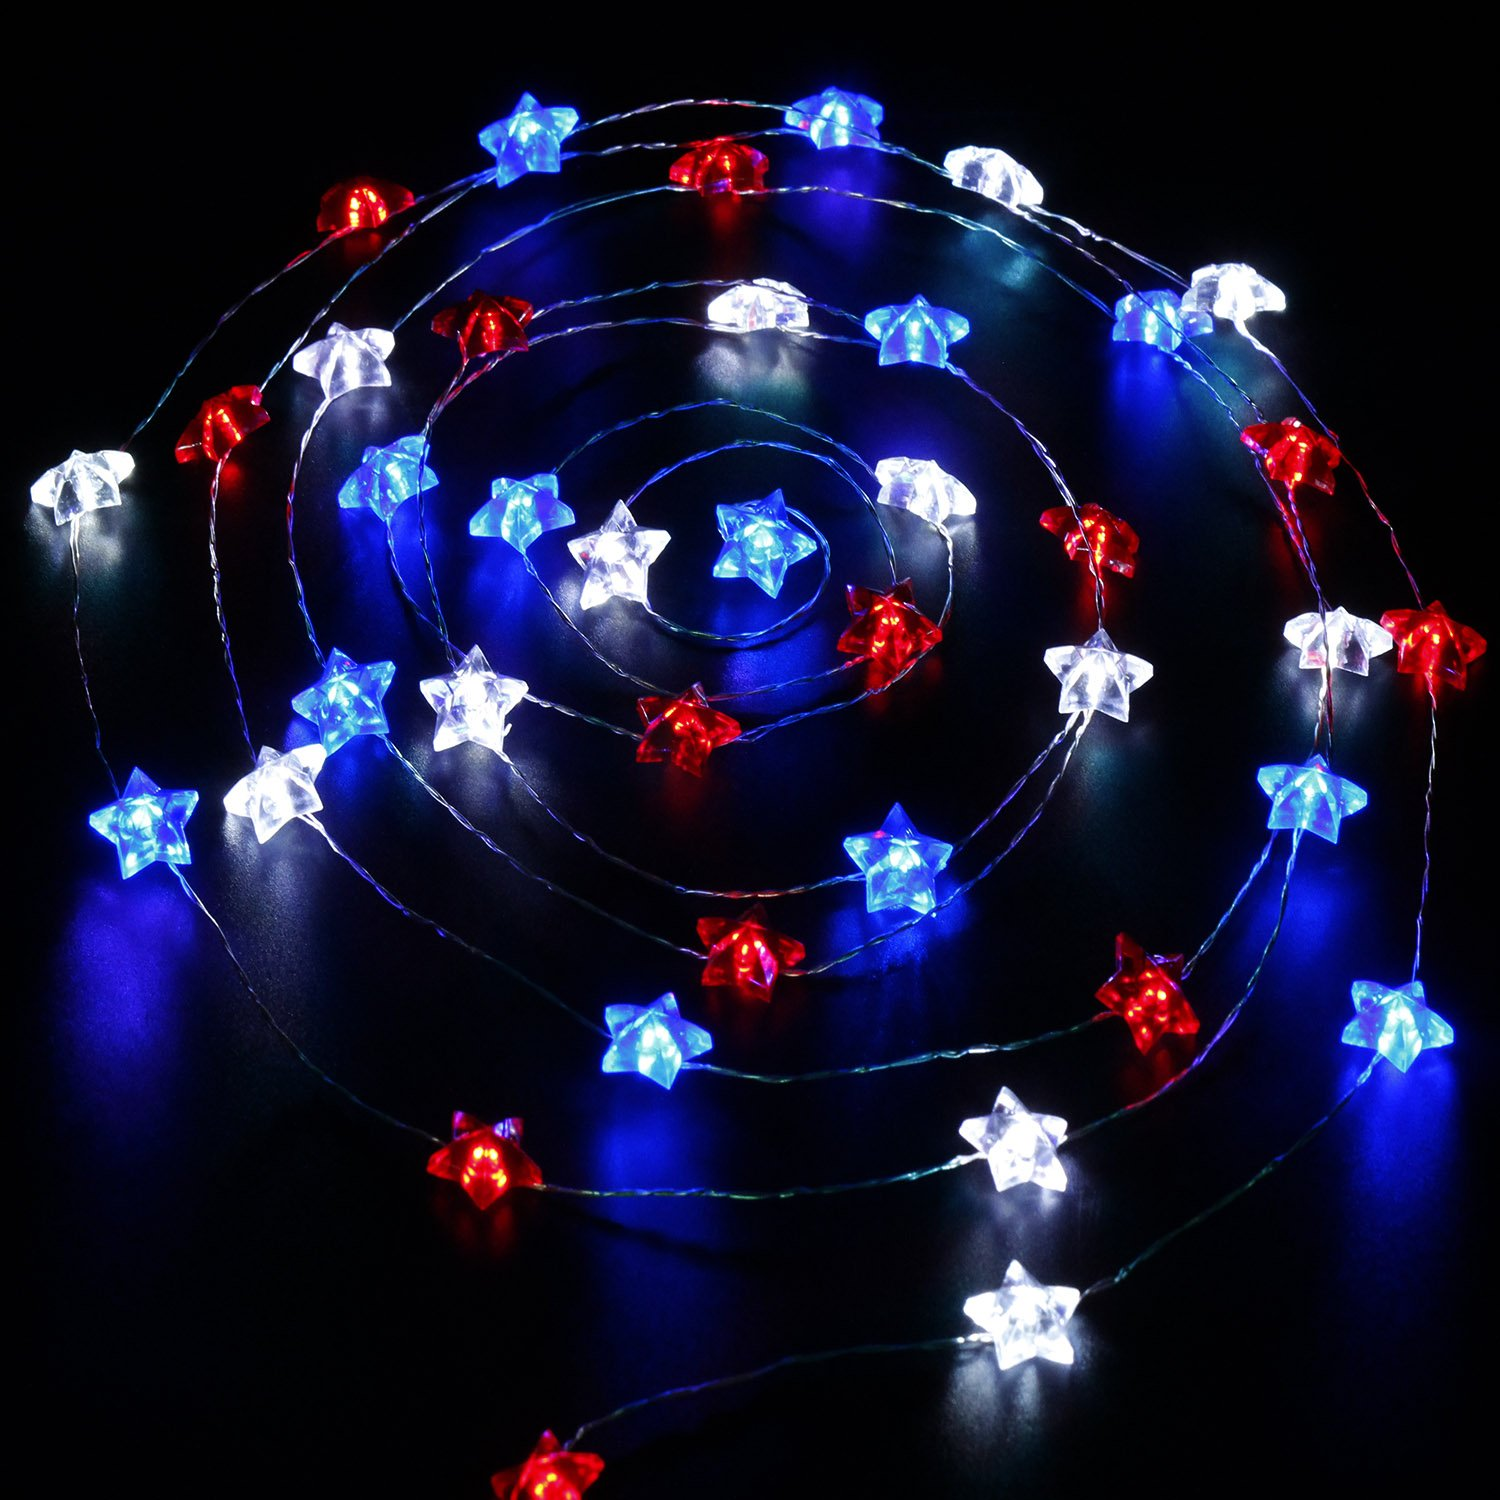 Impress Life Independence Day Decor, USA American Stars Flag Lighting for 4th of July, 10ft 40 LEDs Red White Blue String Lights Battery with Remote Patriotic Decoration Memorial Day Presidents Day